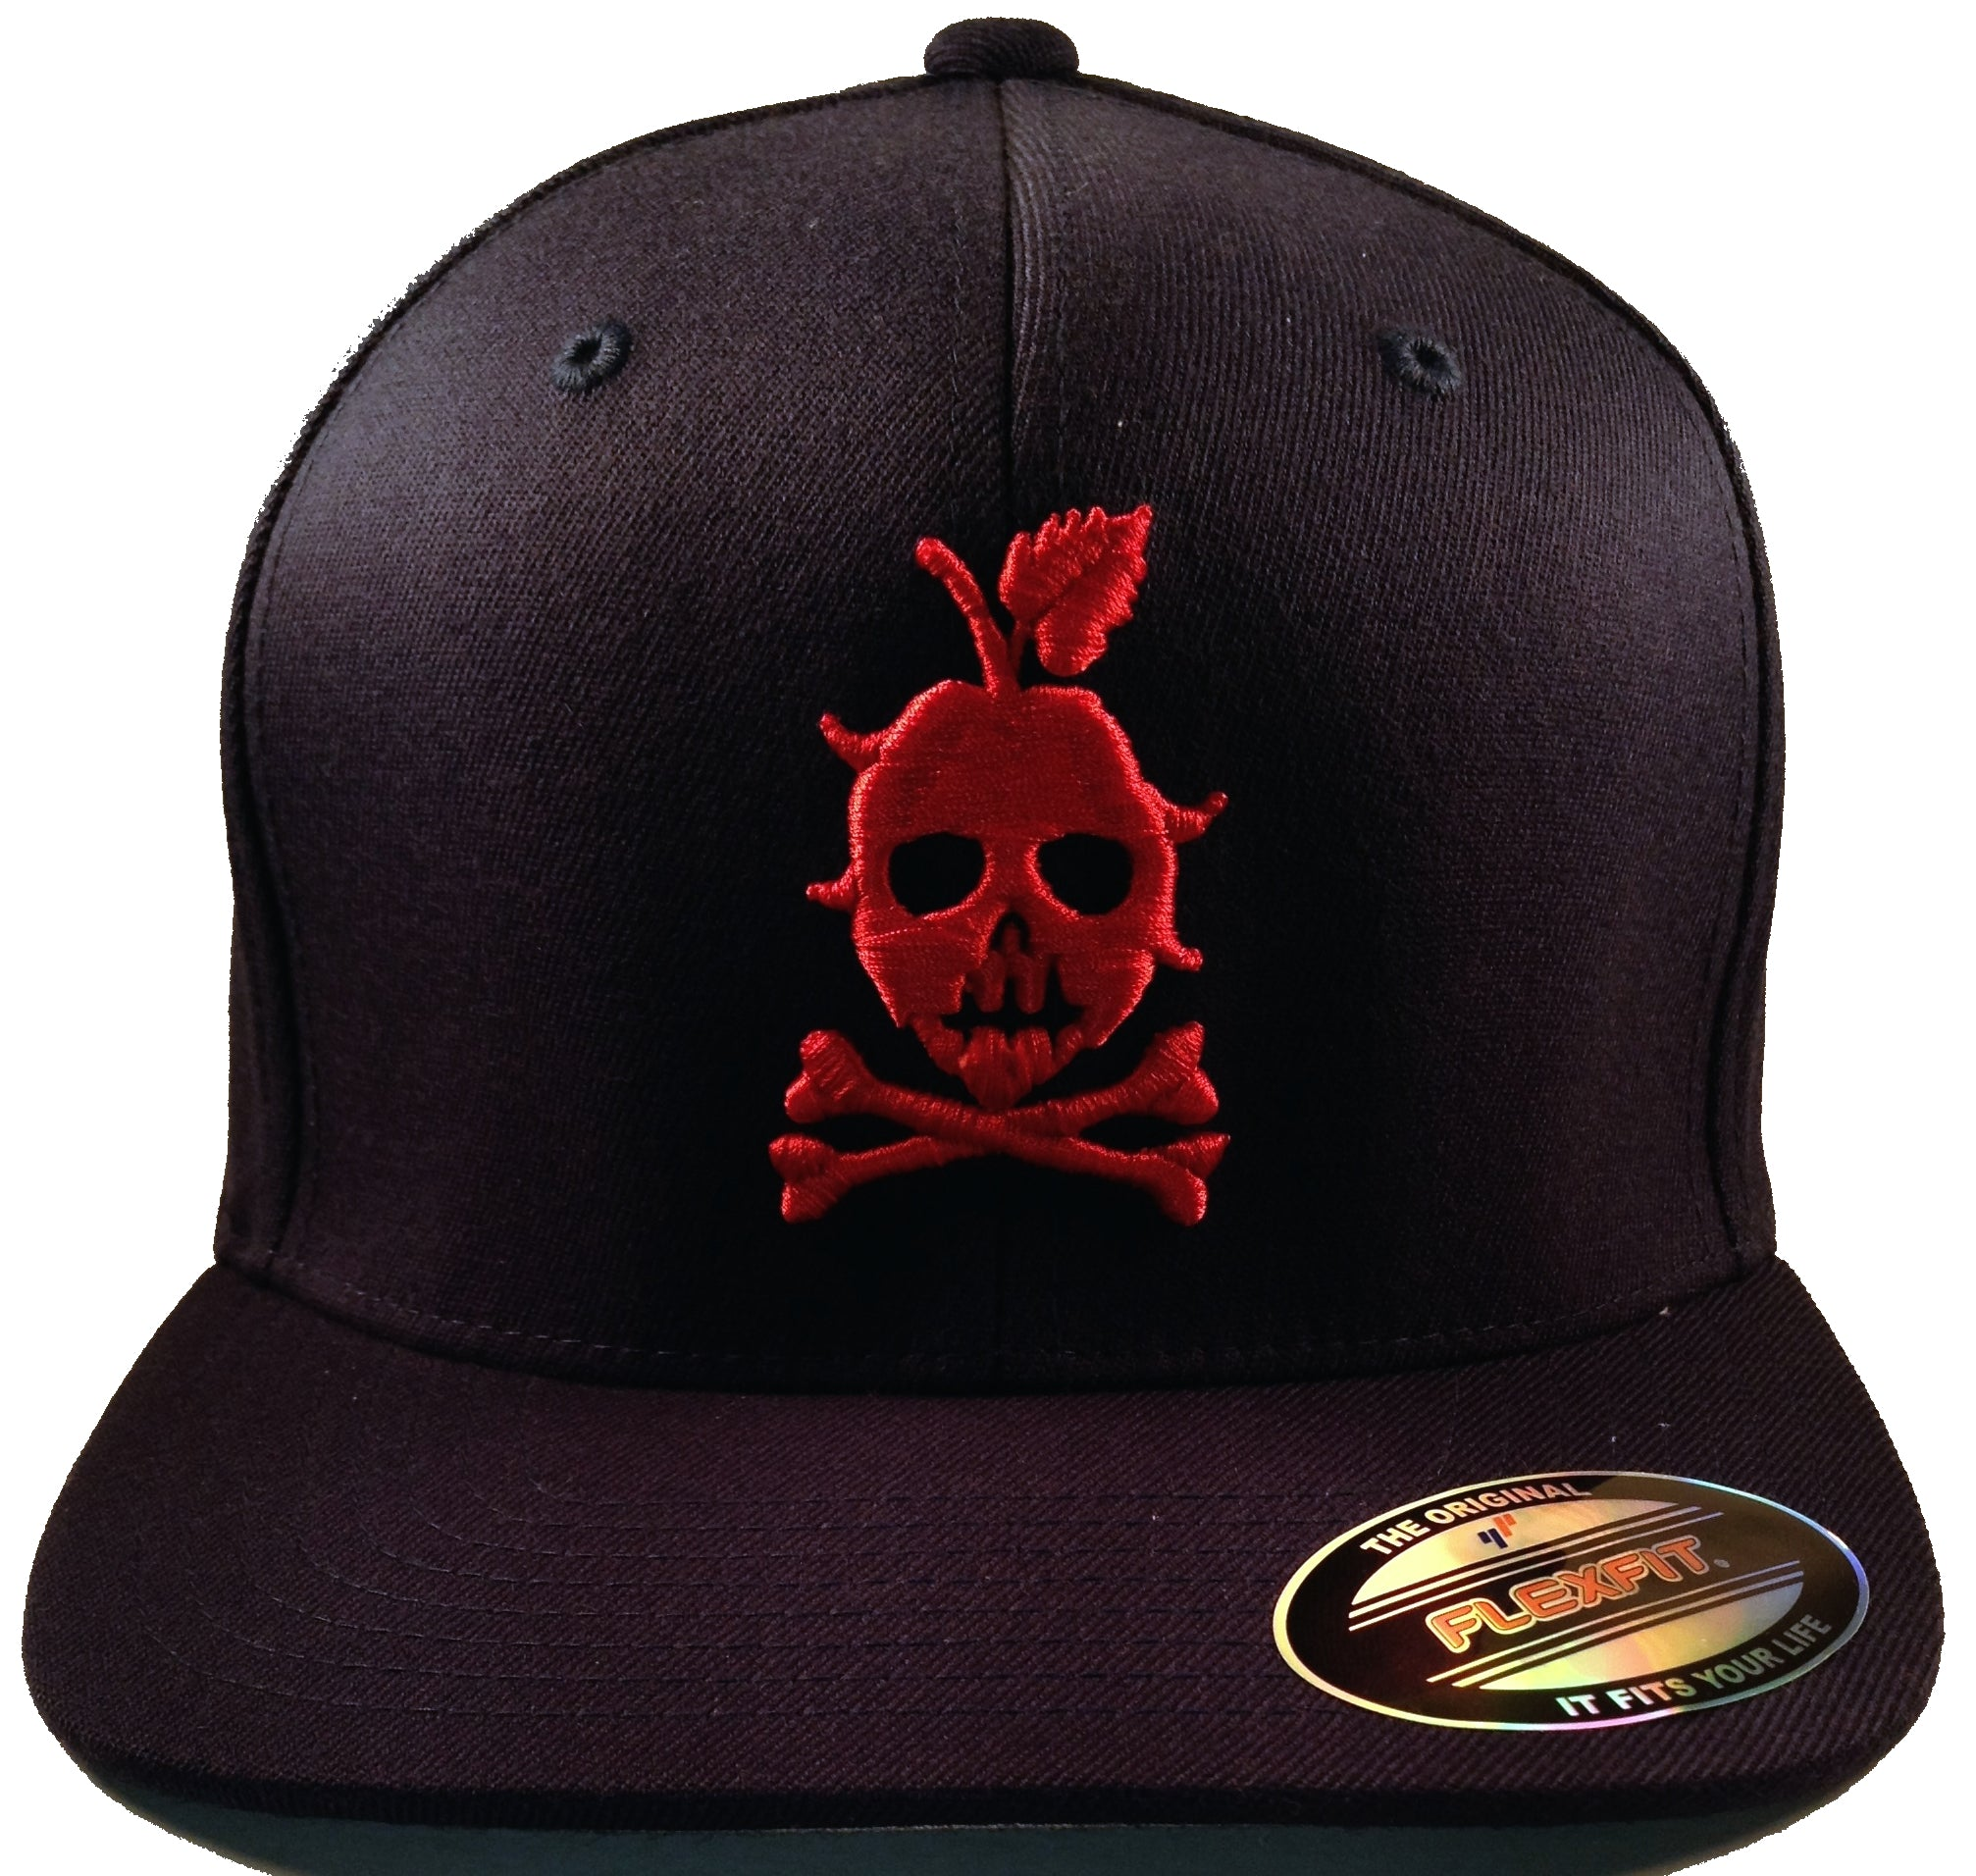 THE LOCAL CAP (Navy and Red)